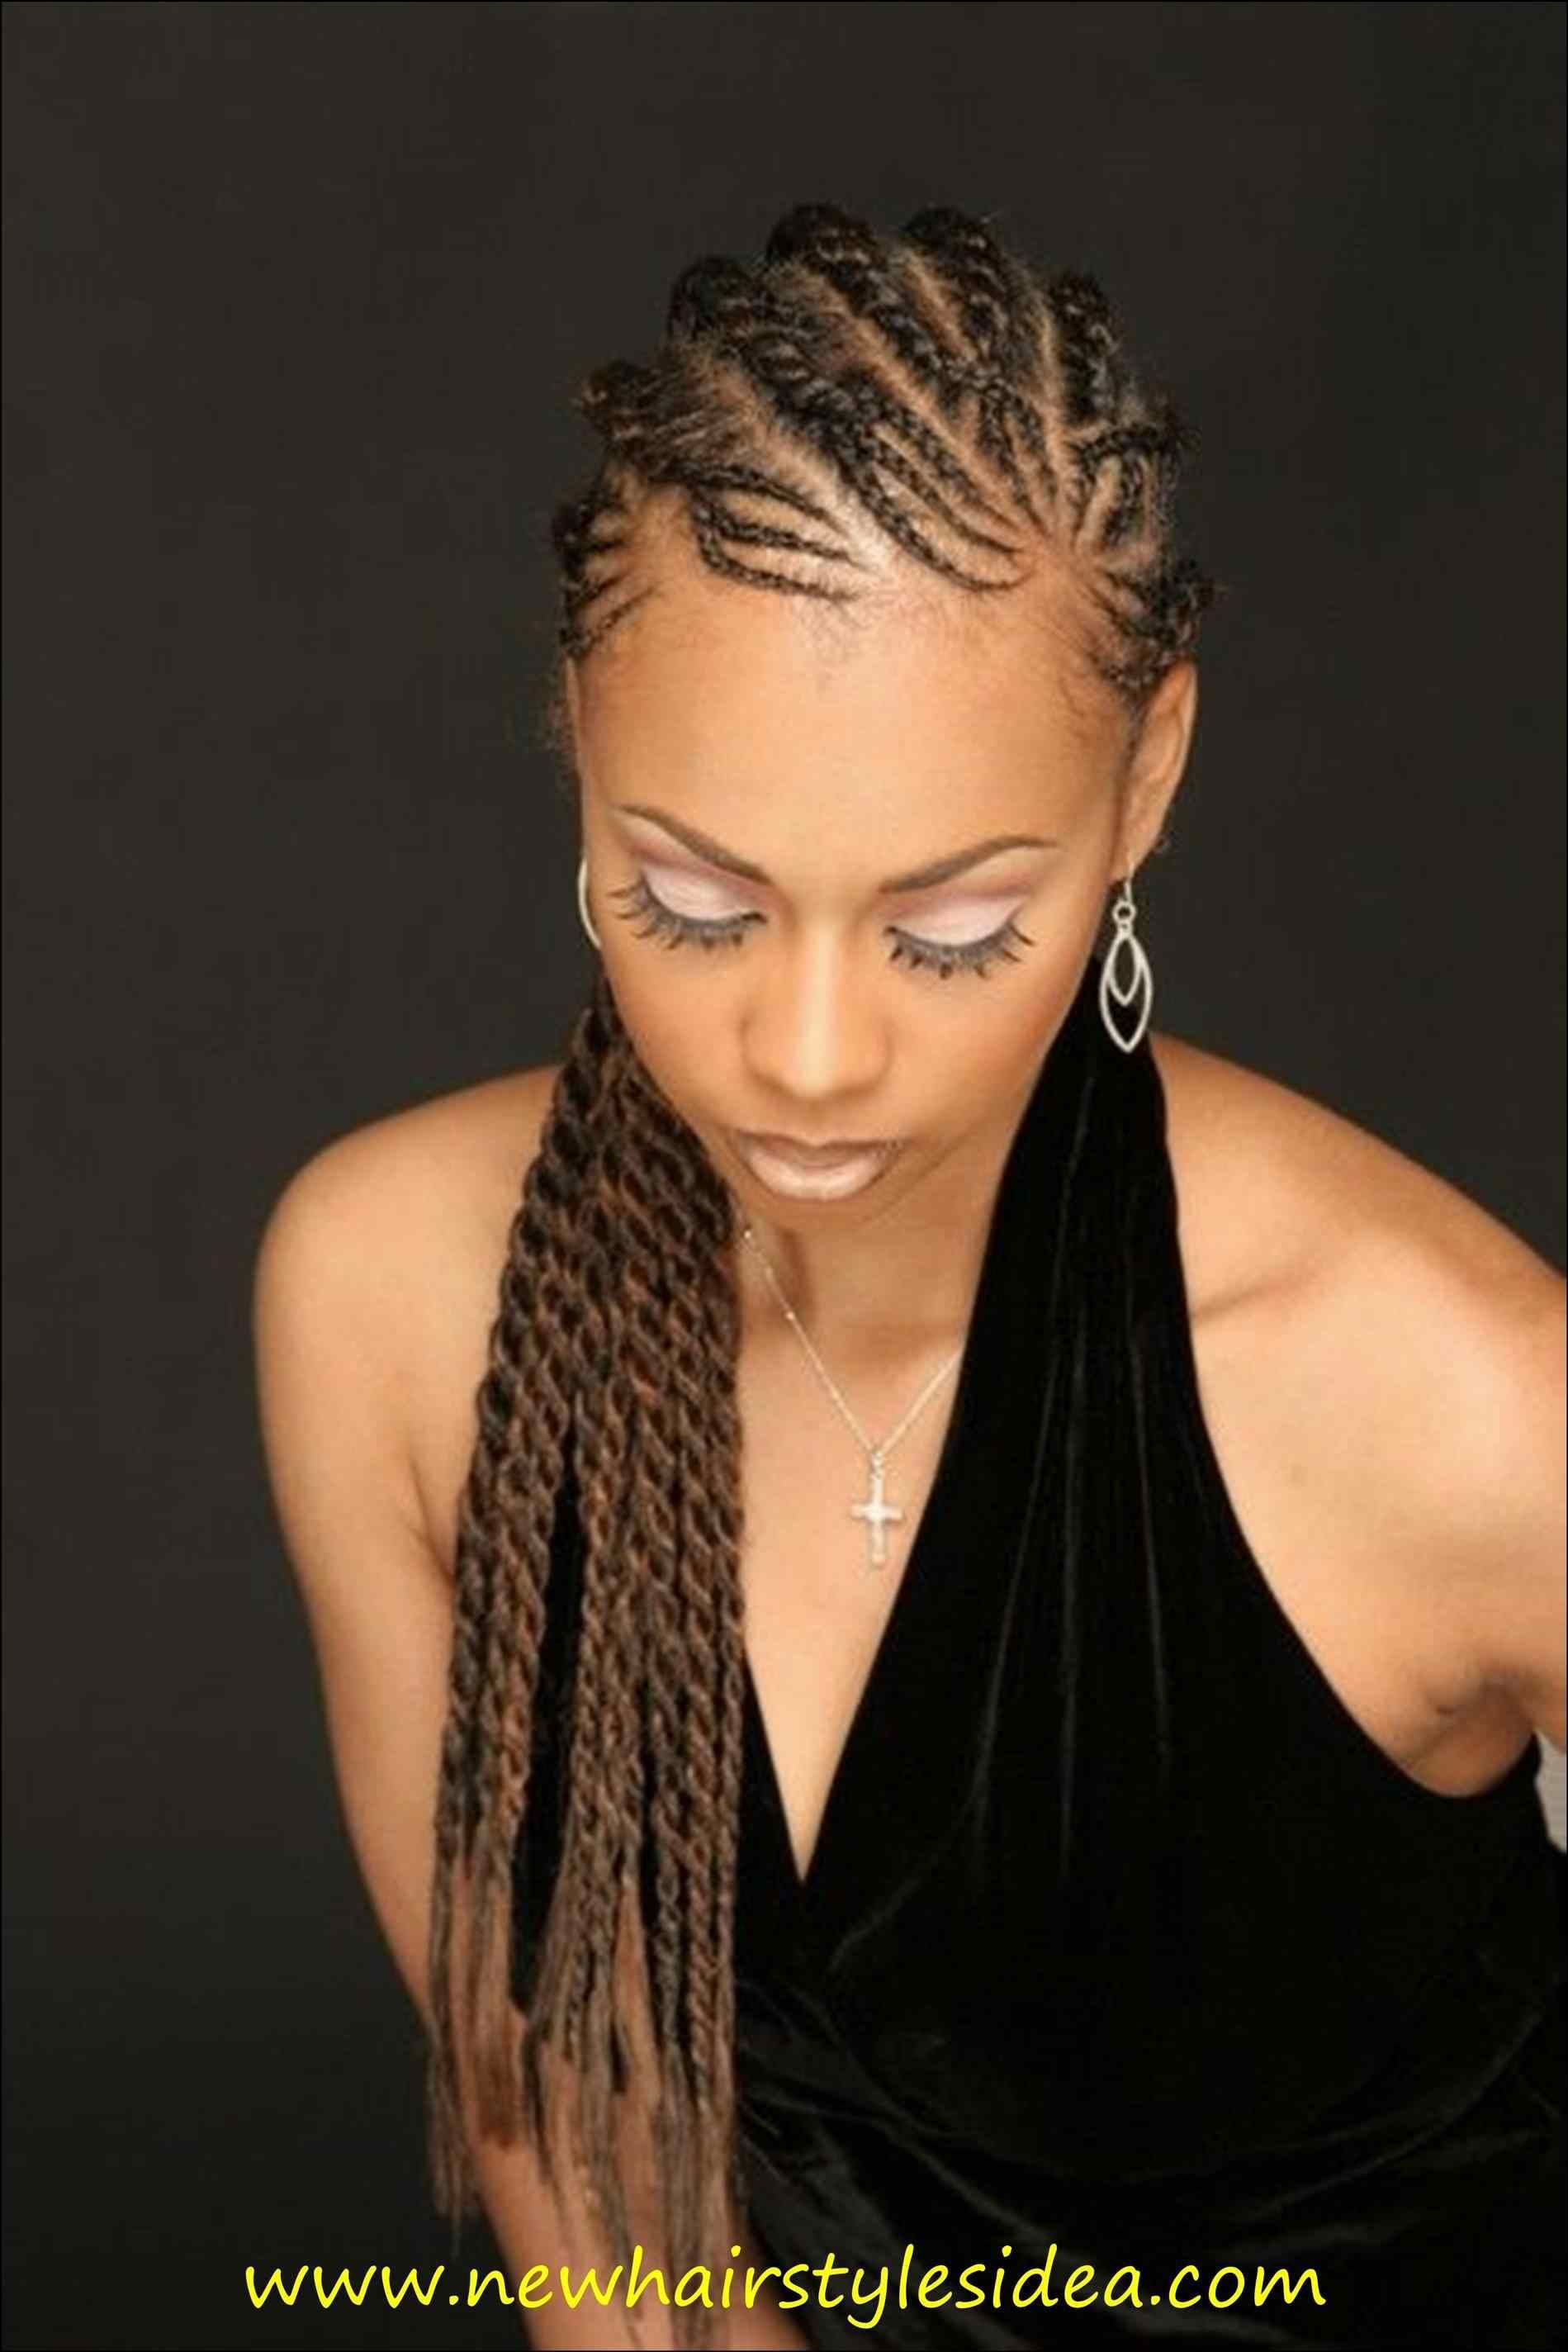 Alicia Keys Braids Hairstyles Cute Hairstyle Bestcoolcom Alicia Alicia Keys Hairstyle Braids Keys Hairs Braided Hairstyles Twist Hairstyles Natural Hair Styles